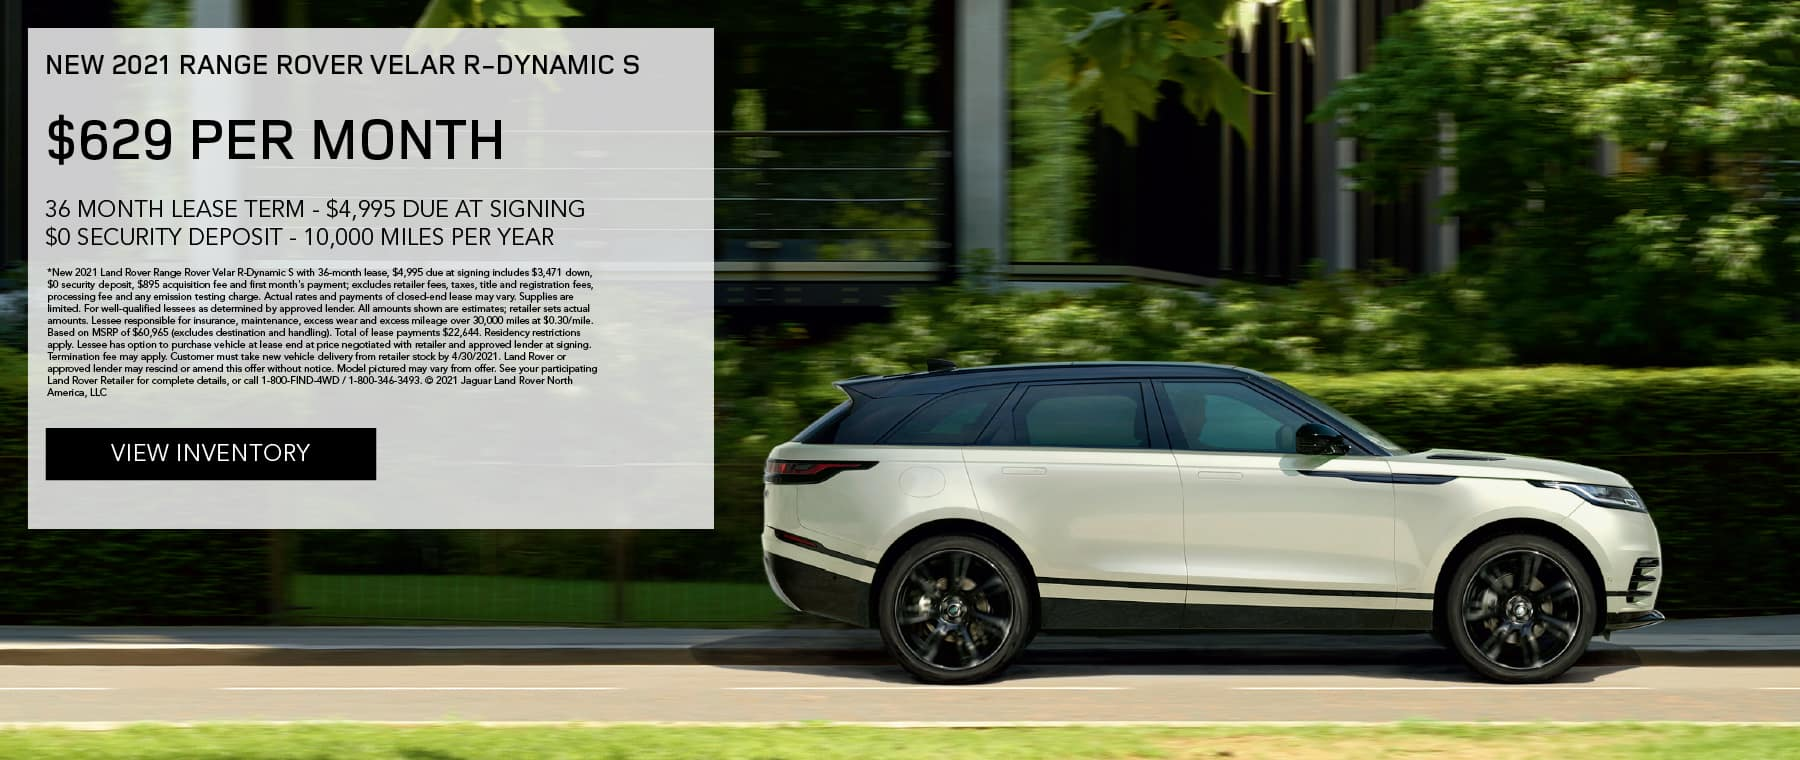 NEW 2021 RANGE ROVER VELAR R-DYNAMIC S. $629 PER MONTH. 36 MONTH LEASE TERM. $4,995 CASH DUE AT SIGNING. $0 SECURITY DEPOSIT. 10,000 MILES PER YEAR. EXCLUDES RETAILER FEES, TAXES, TITLE AND REGISTRATION FEES, PROCESSING FEE AND ANY EMISSION TESTING CHARGE. ENDS 4/30/2021. VIEW INVENTORY. SILVER RANGE ROVER VELAR DRIVING THROUGH CITY.